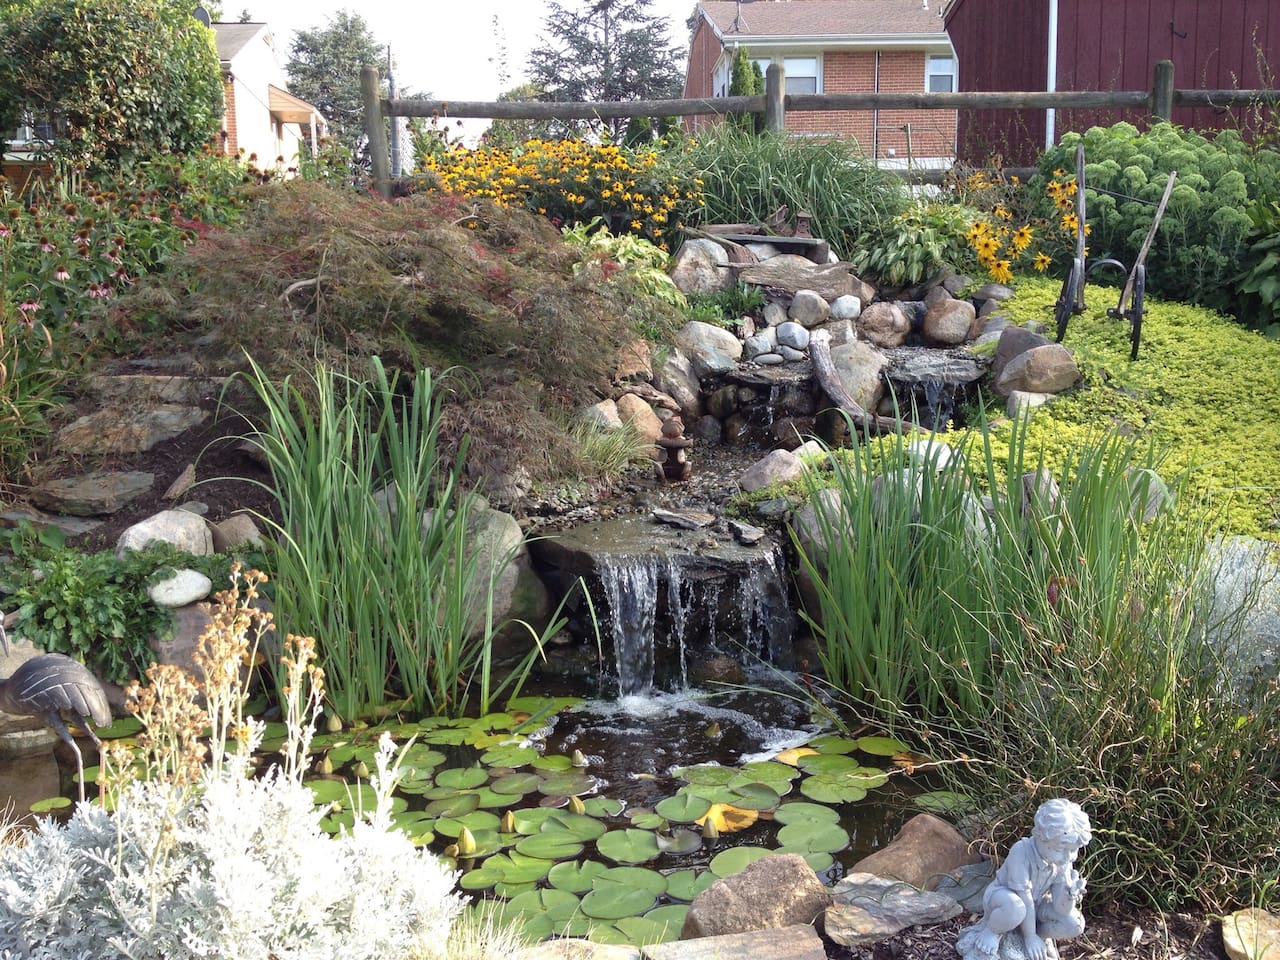 Beautiful landscaped garden with waterfall and fish pond